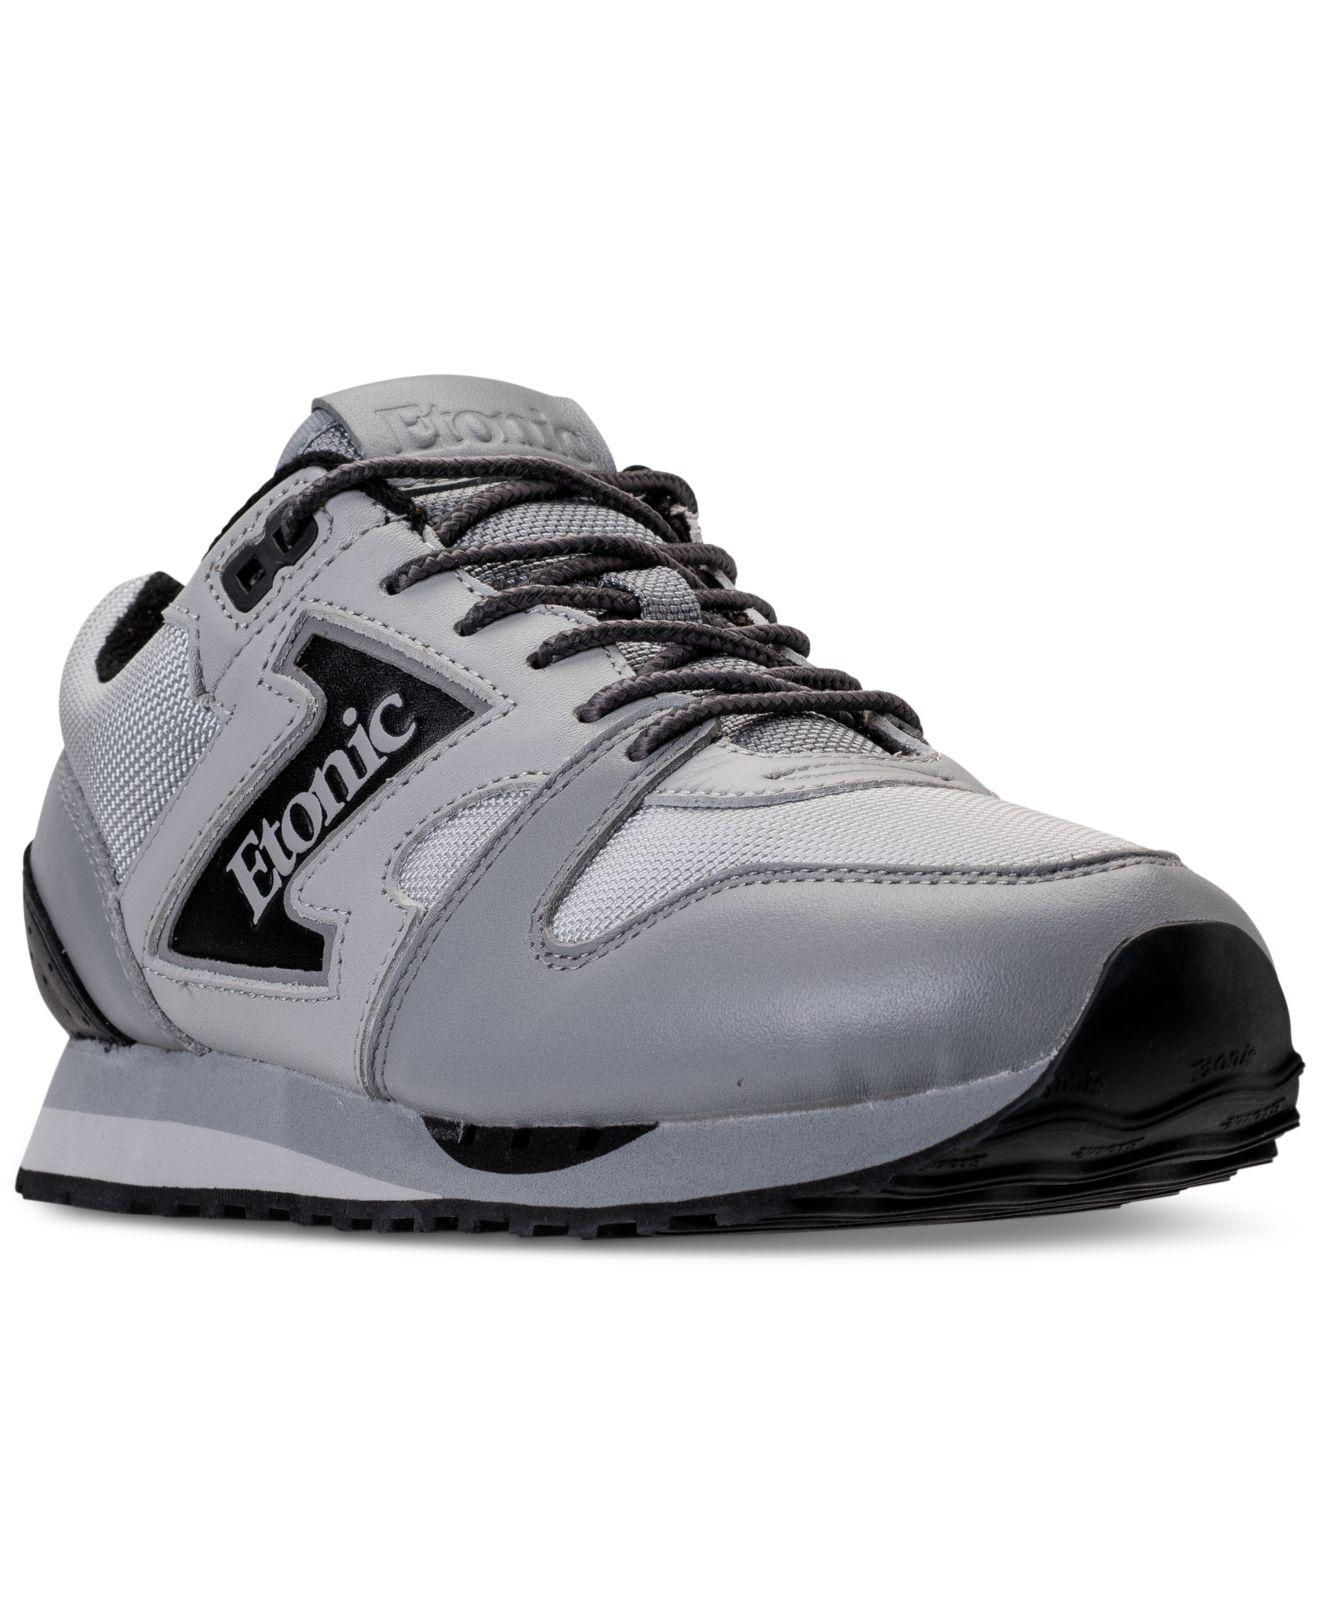 21cef6a1839b Lyst - Etonic Men s Trans Am Ghurka Casual Sneakers From Finish Line ...